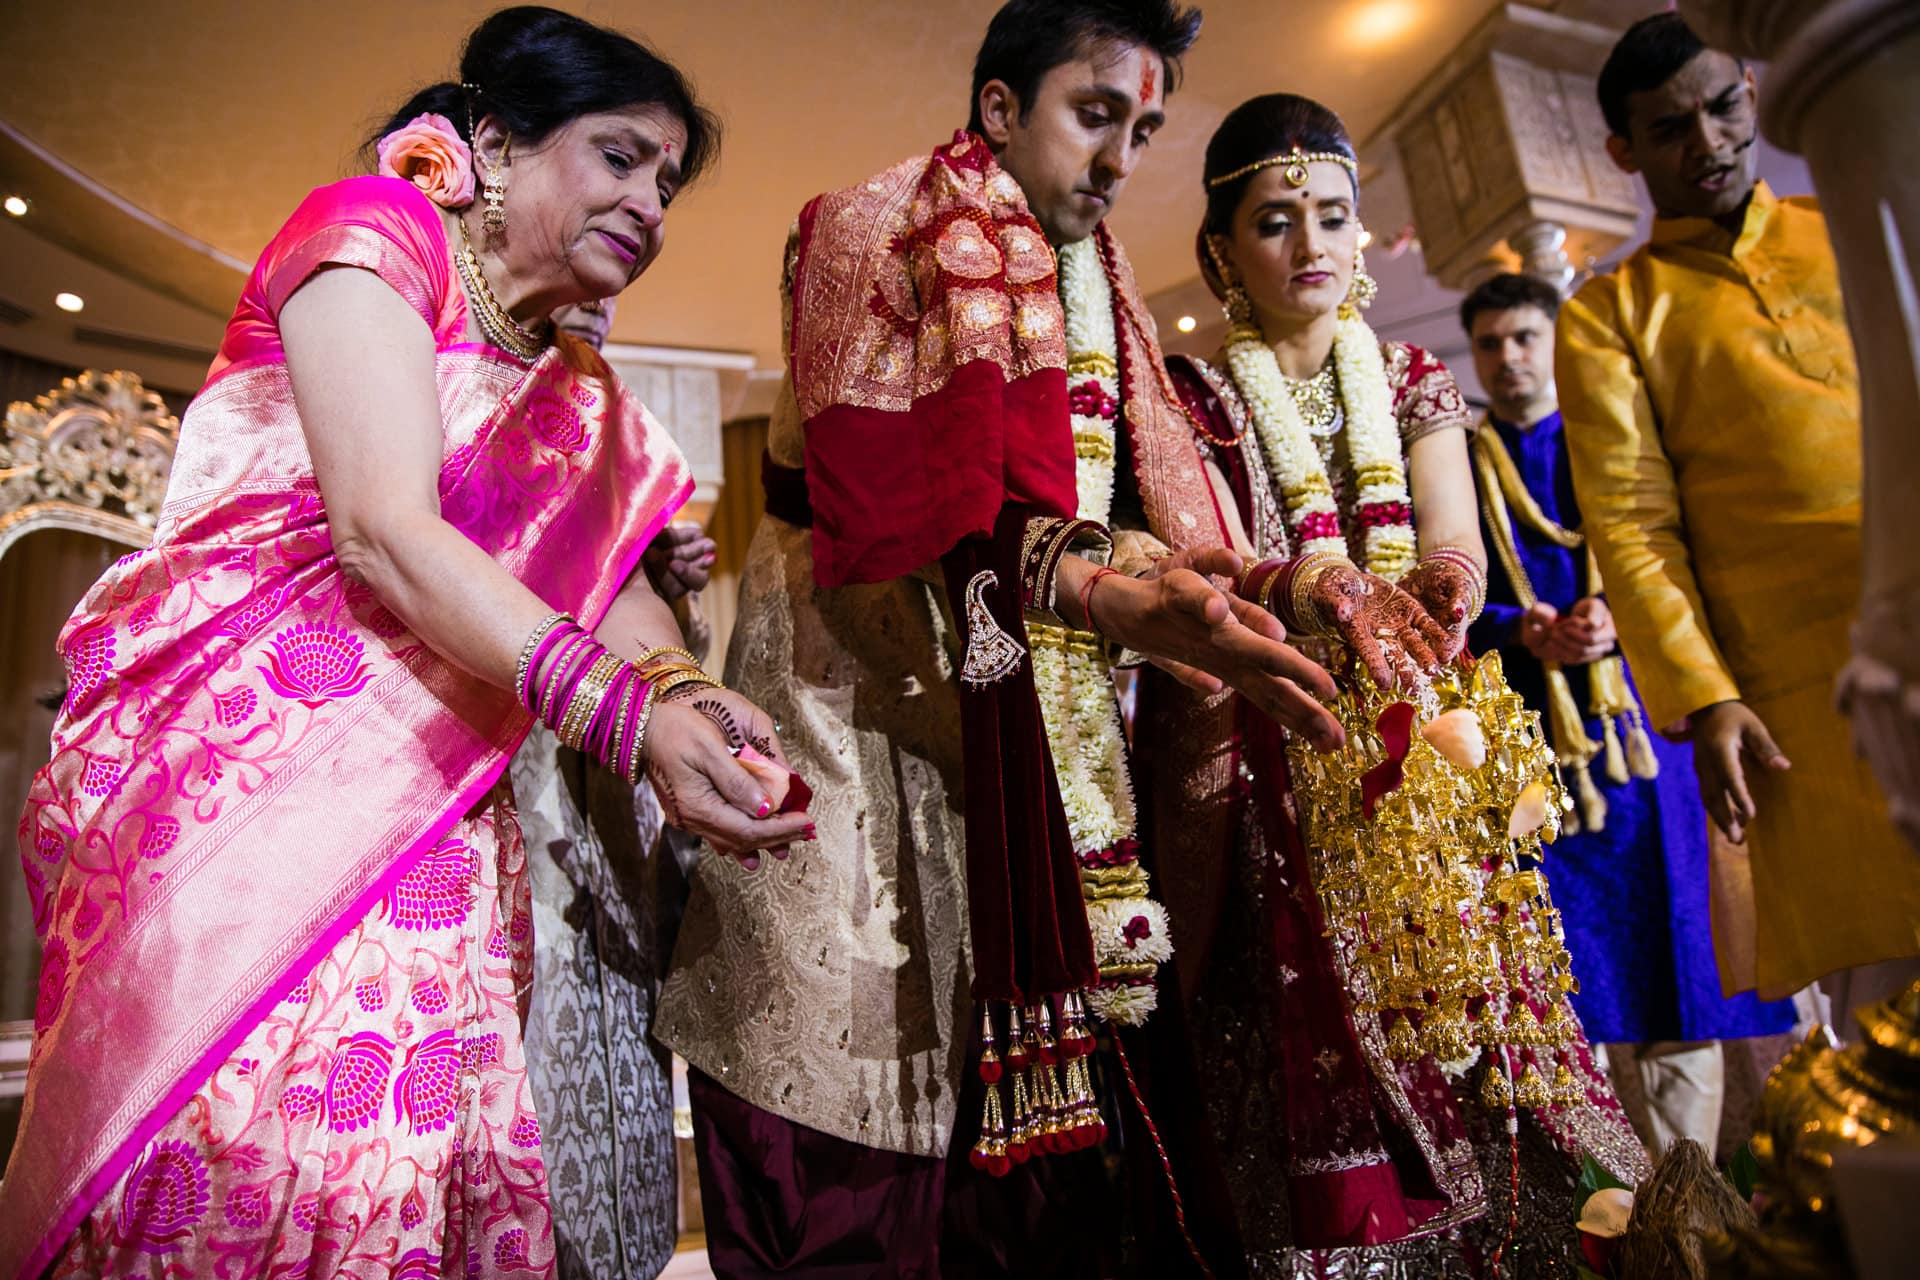 Final blessing ceremony during Hindu Wedding